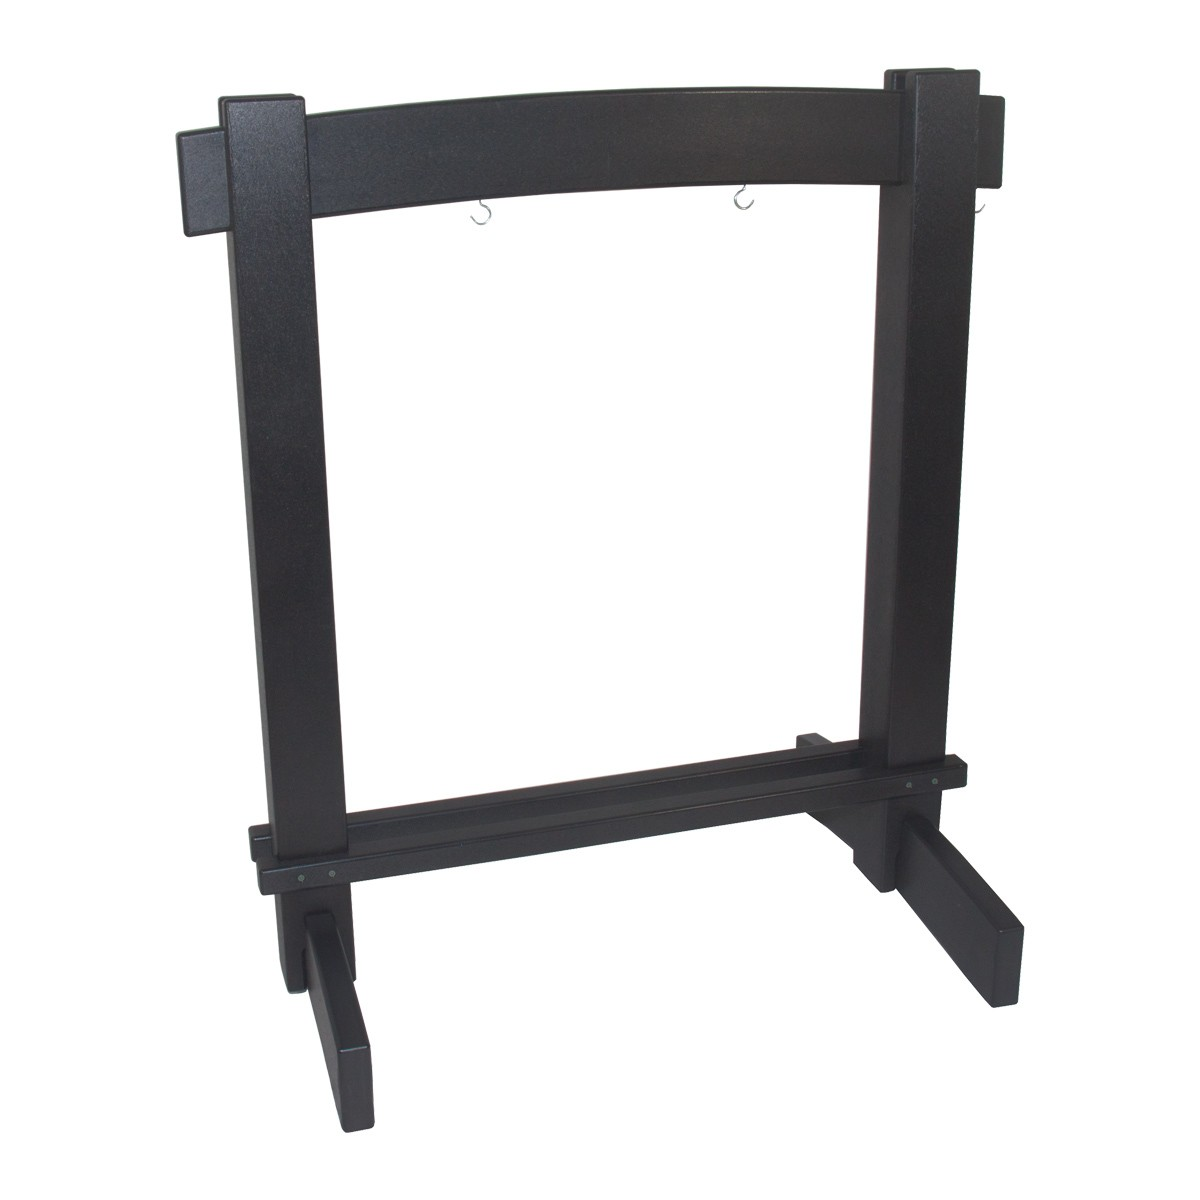 DOBANI Recycled Plastic Arched Gong Stand For 26-Inch Gong  - Black